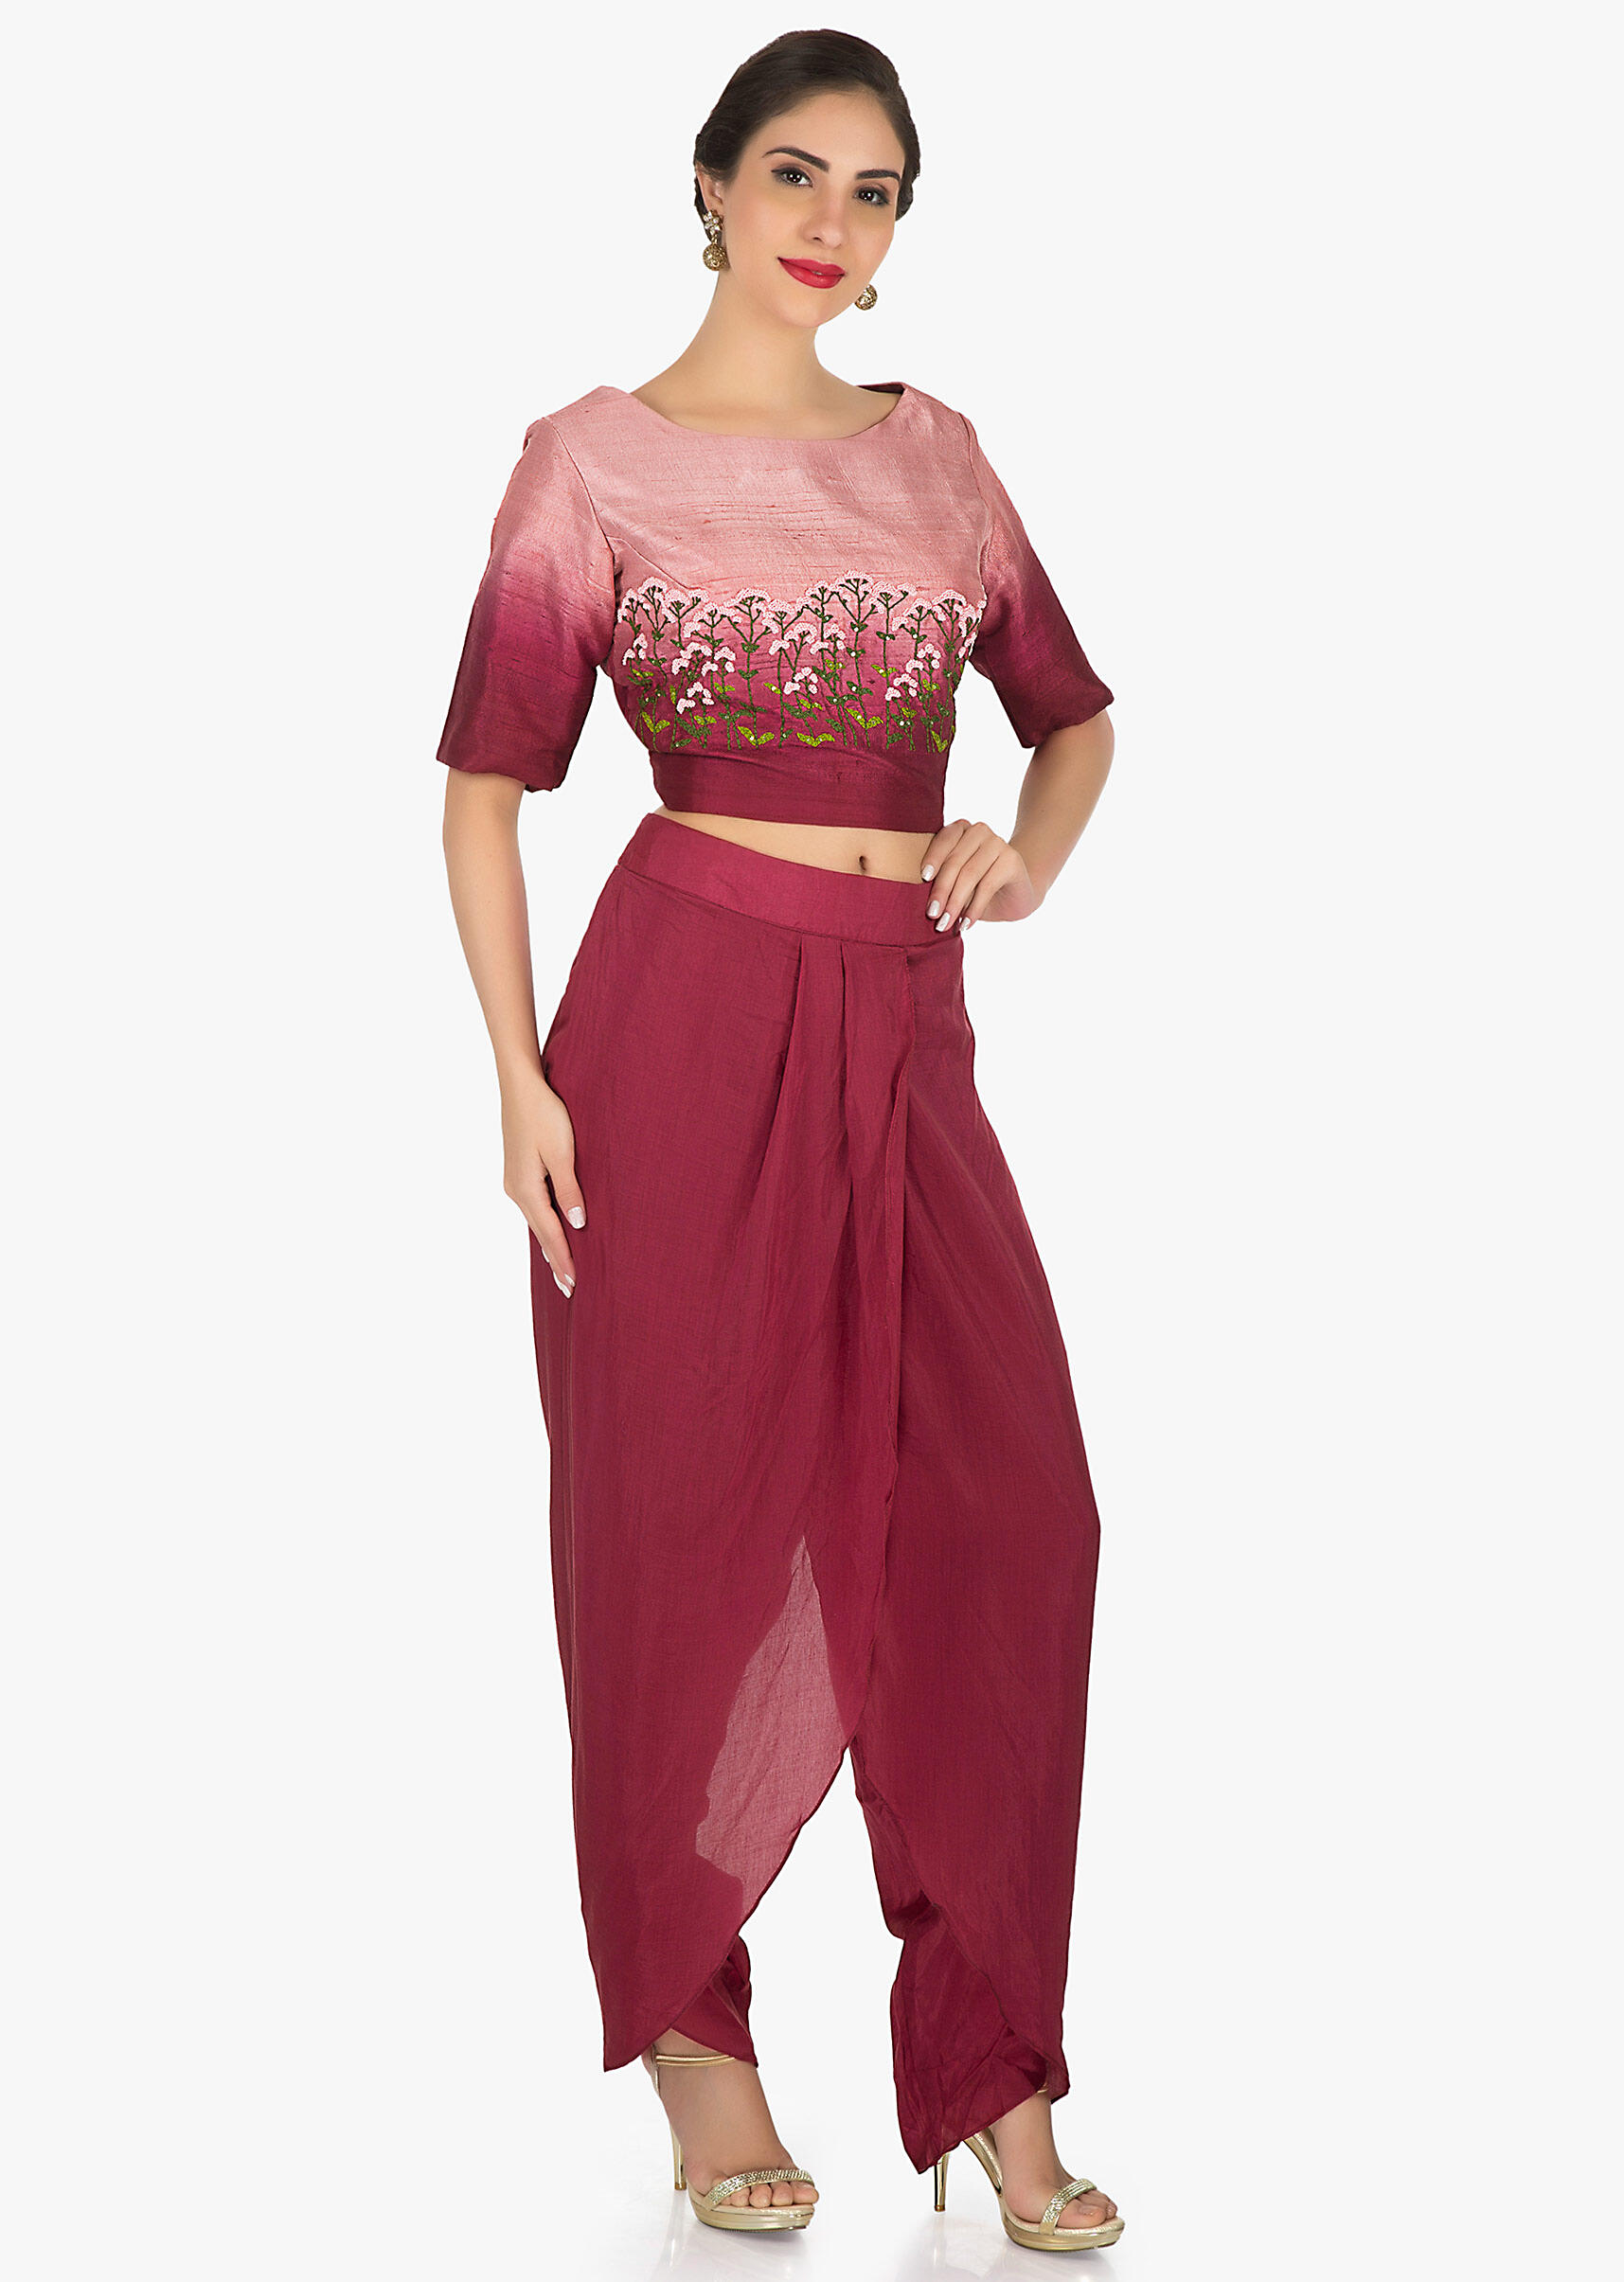 361e58100b7cf Maroon dhoti suit in raw silk is embellished with french knot in floral  motifs only on Kalki